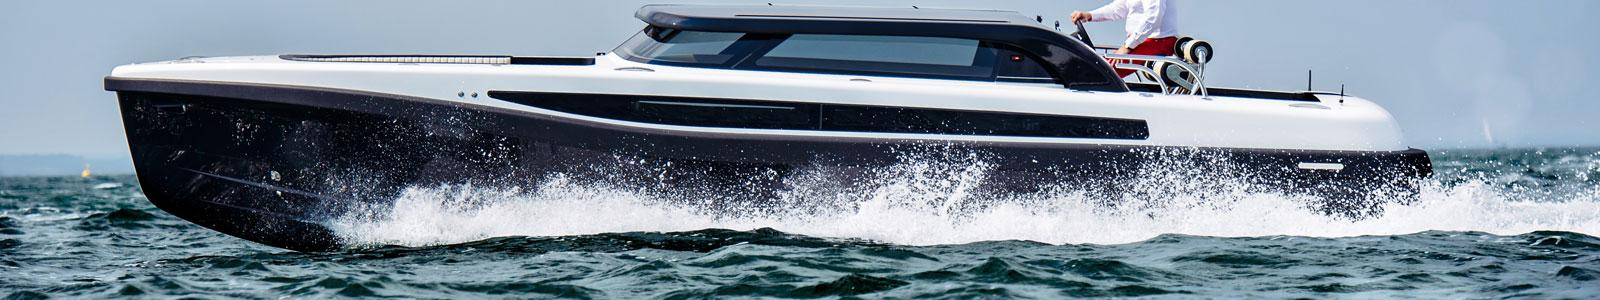 Projects-2017-09-Superyacht-tender-Pascoe-International-SL-Limousine-thumbnail.jpg